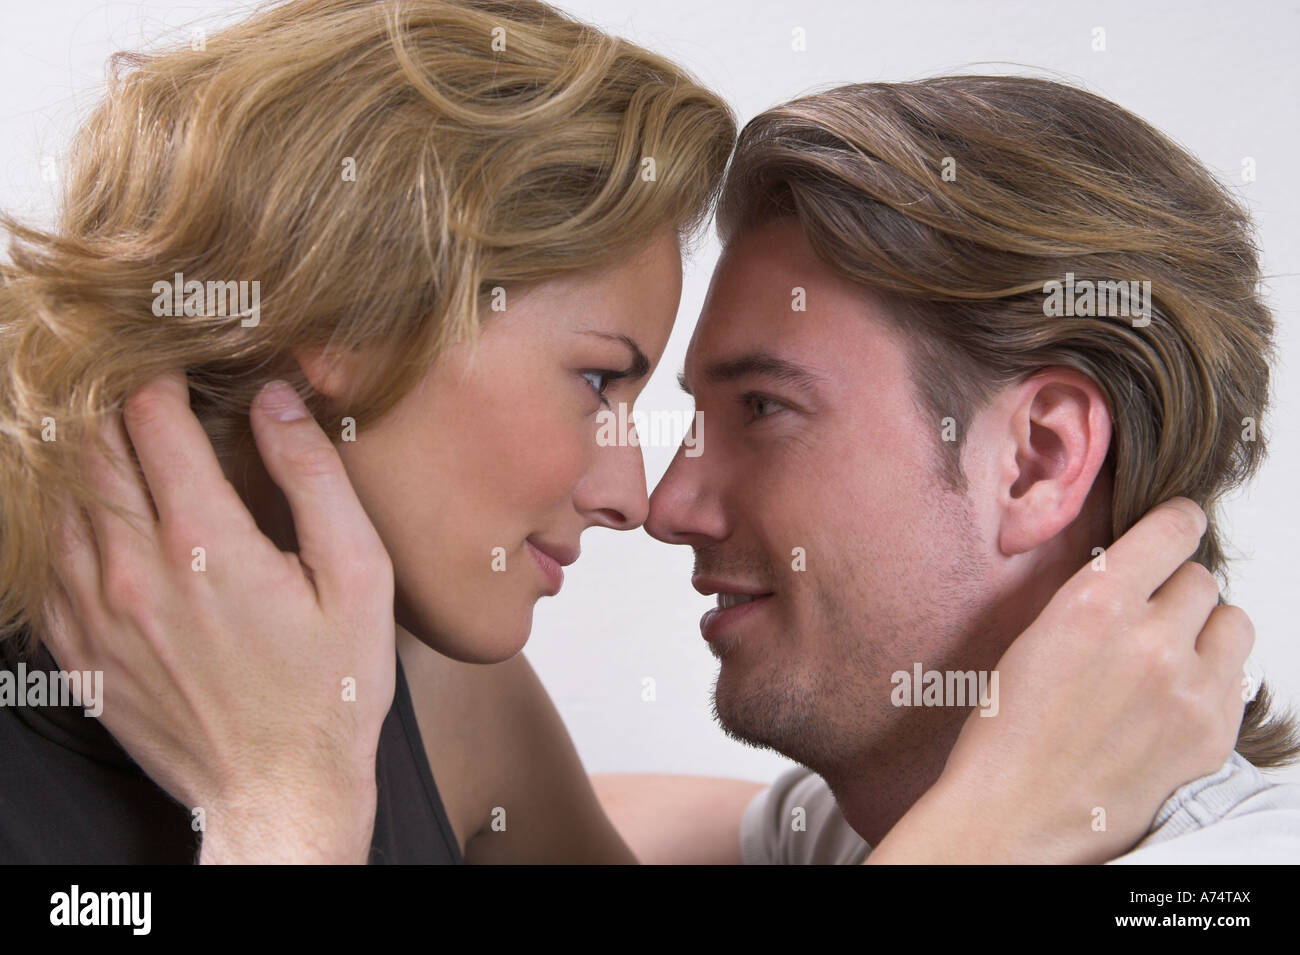 headshot of young couple tenderly looking at each other - Stock Image